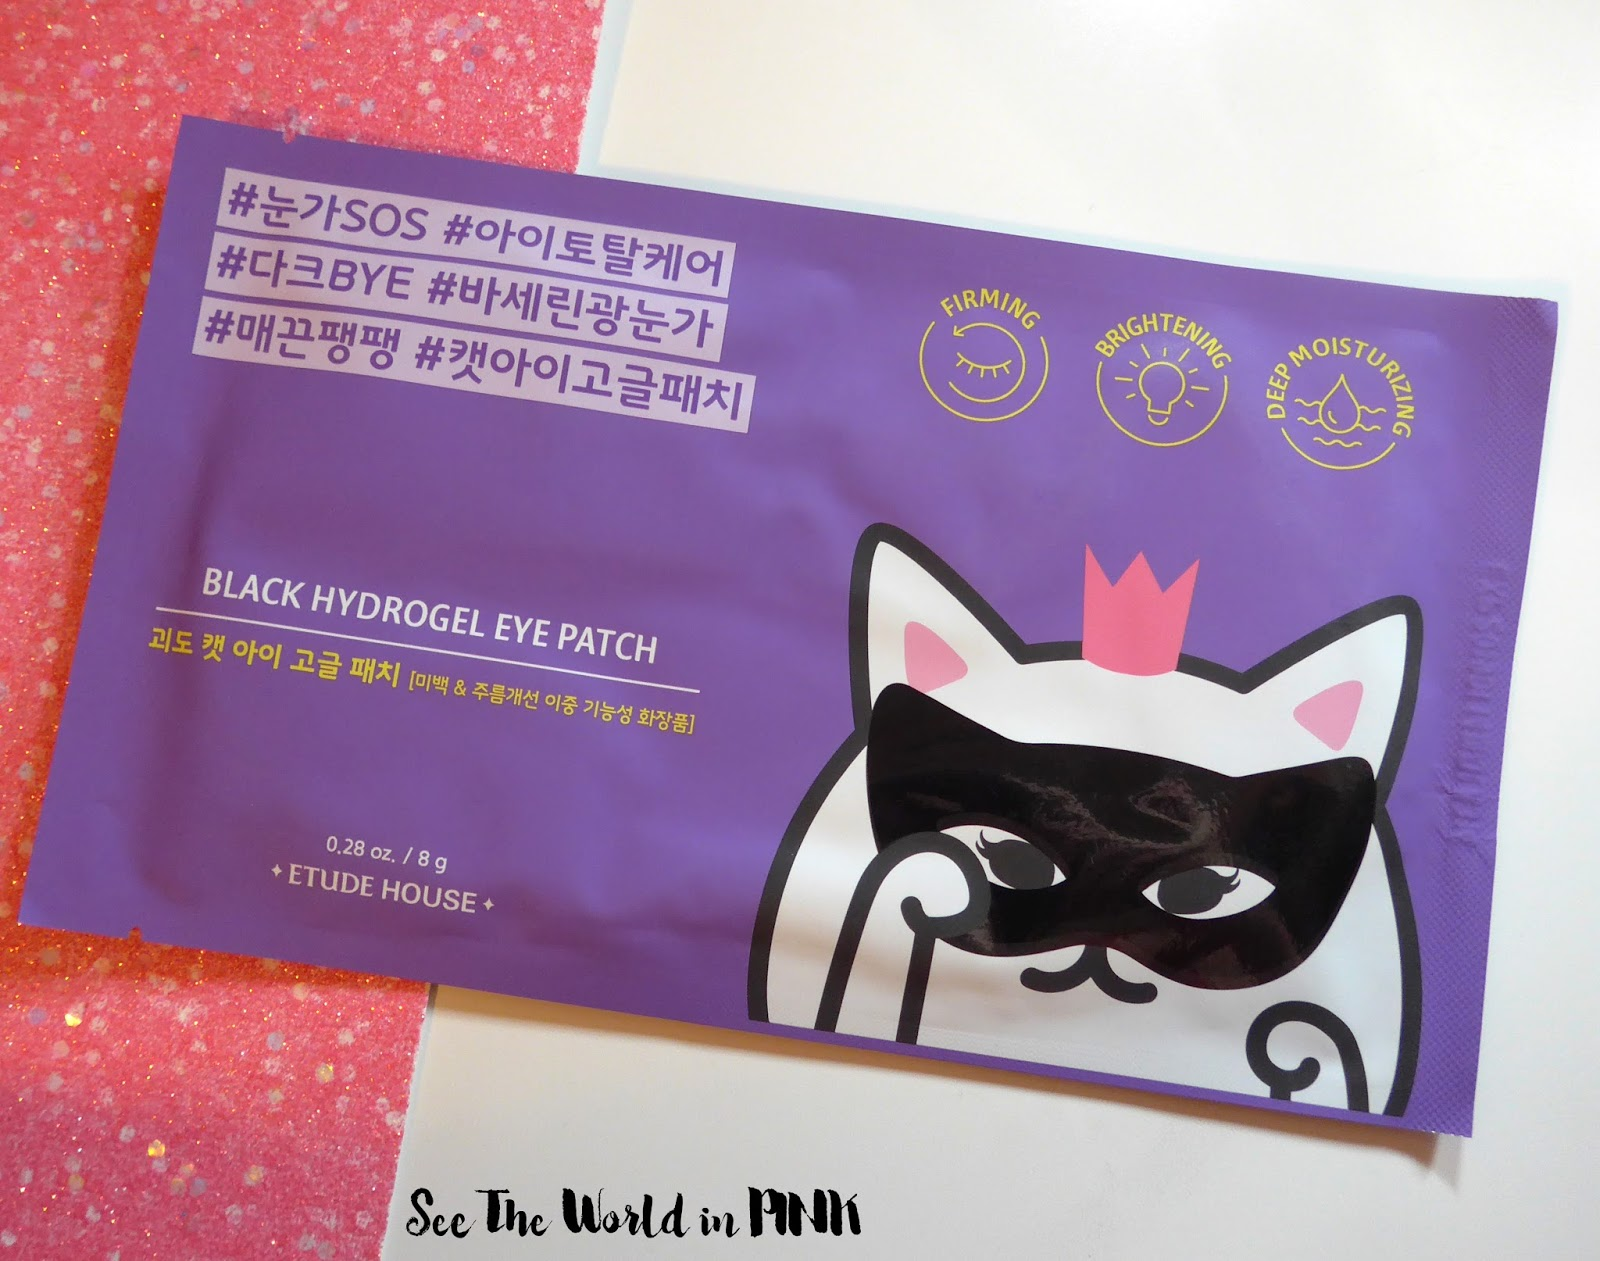 Mask Wednesday - Etude House Black Hydrogel Eye Patch (Look Like A Kitty Mask!) Try-on and Review!